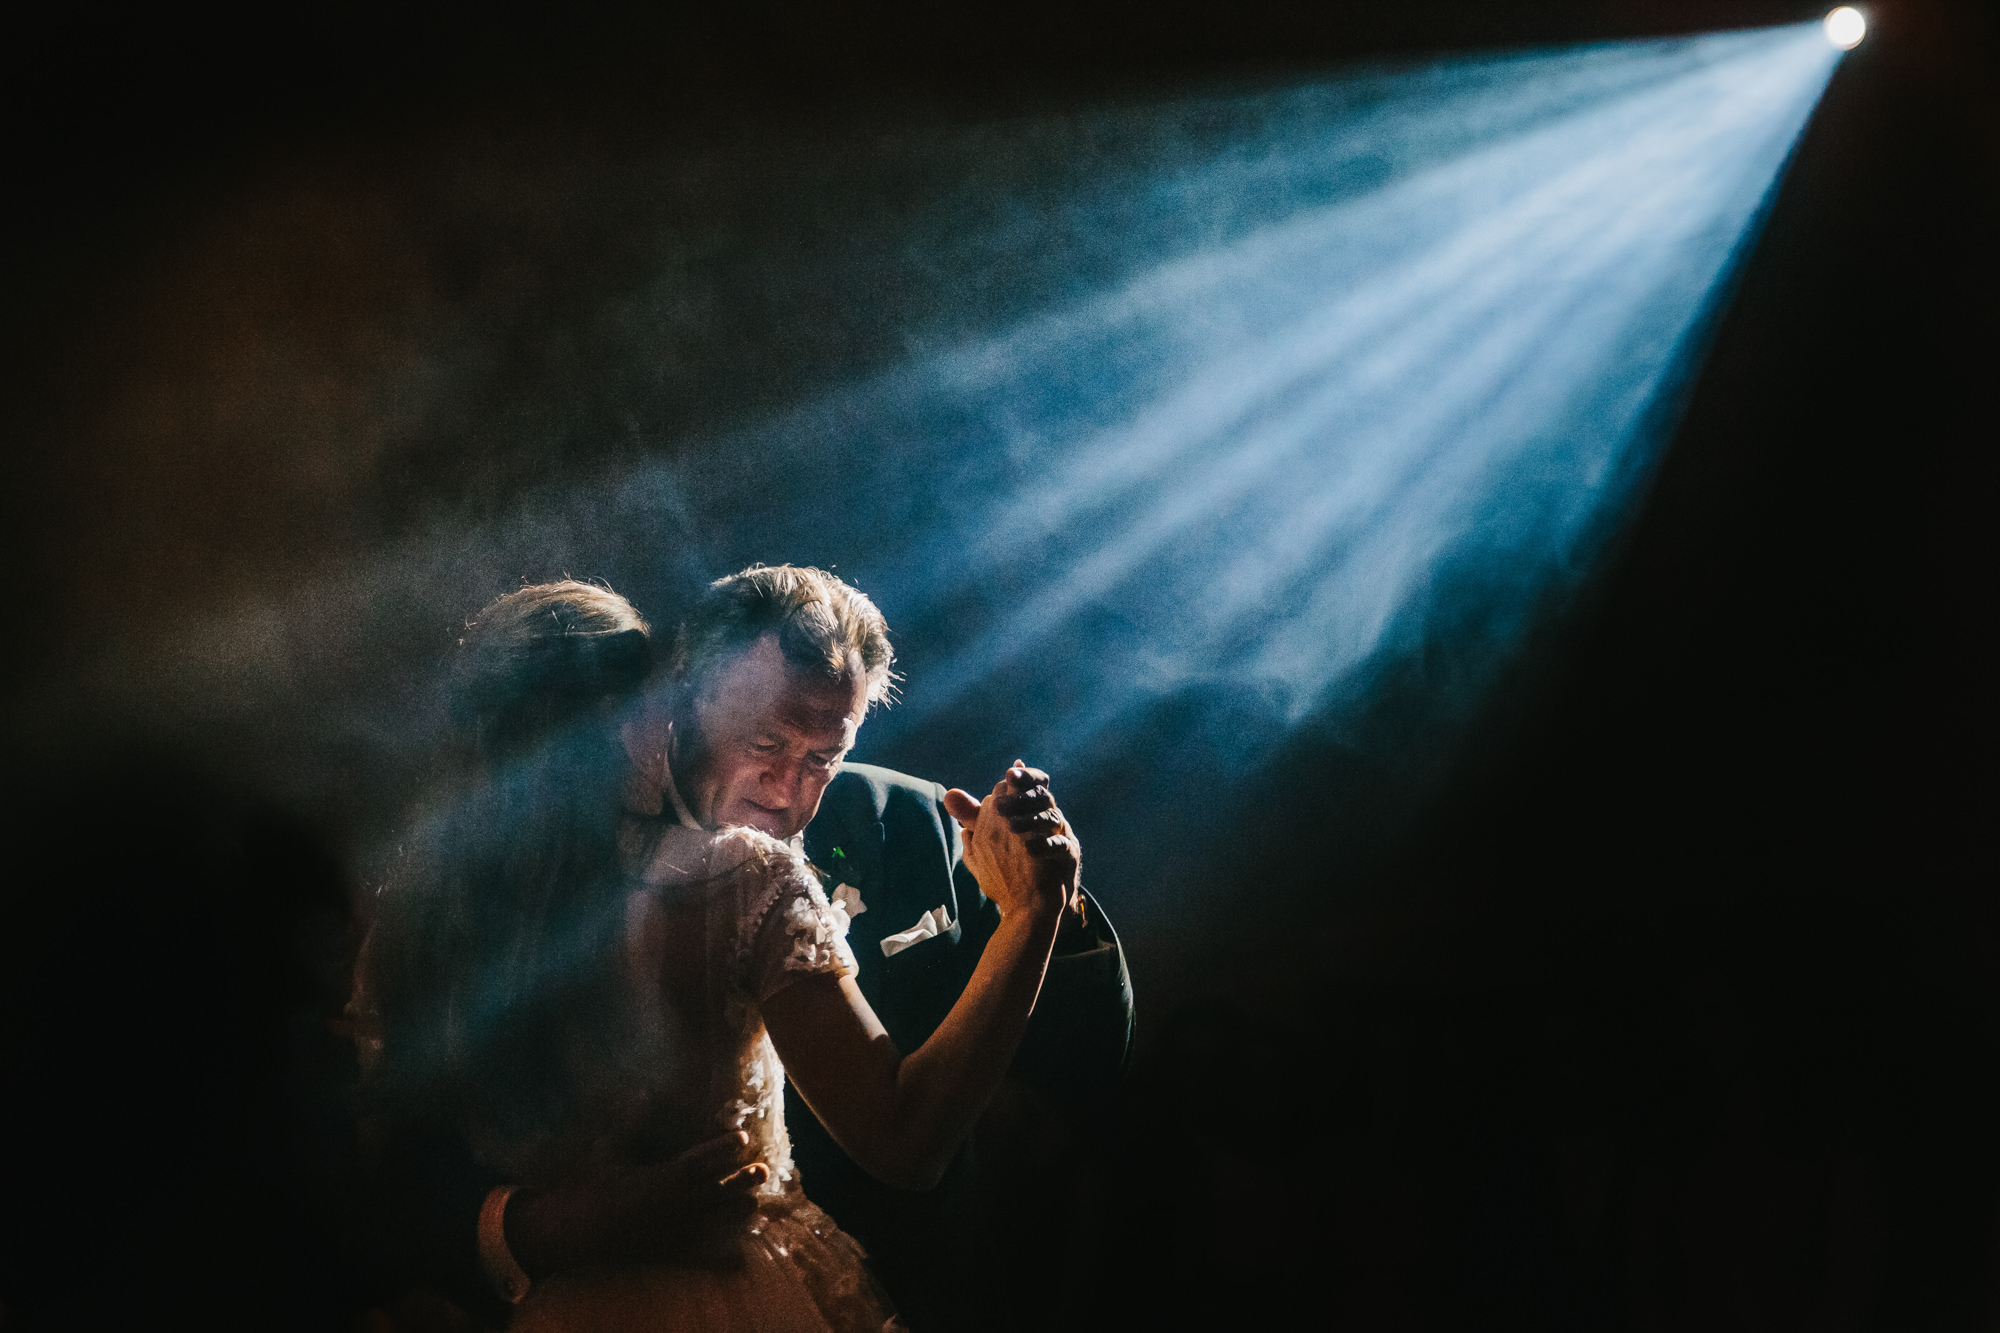 Couple dancing in spotlight photo by Yves Schepers